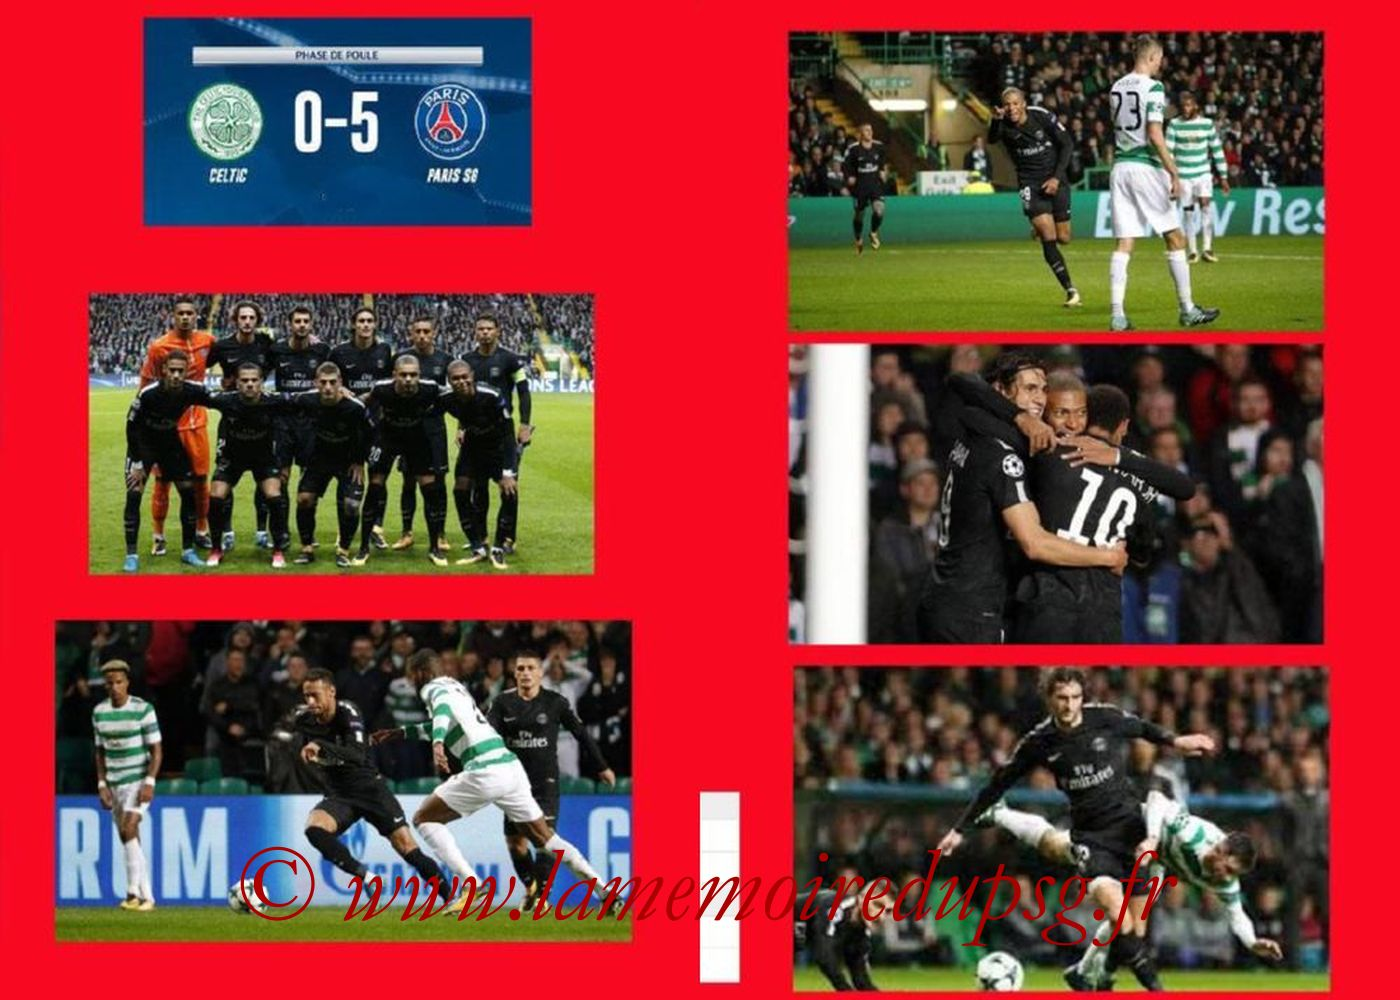 2017-11-22  PSG-Celtic (5ème C1, Programme pirate) - Pages 02 et 03